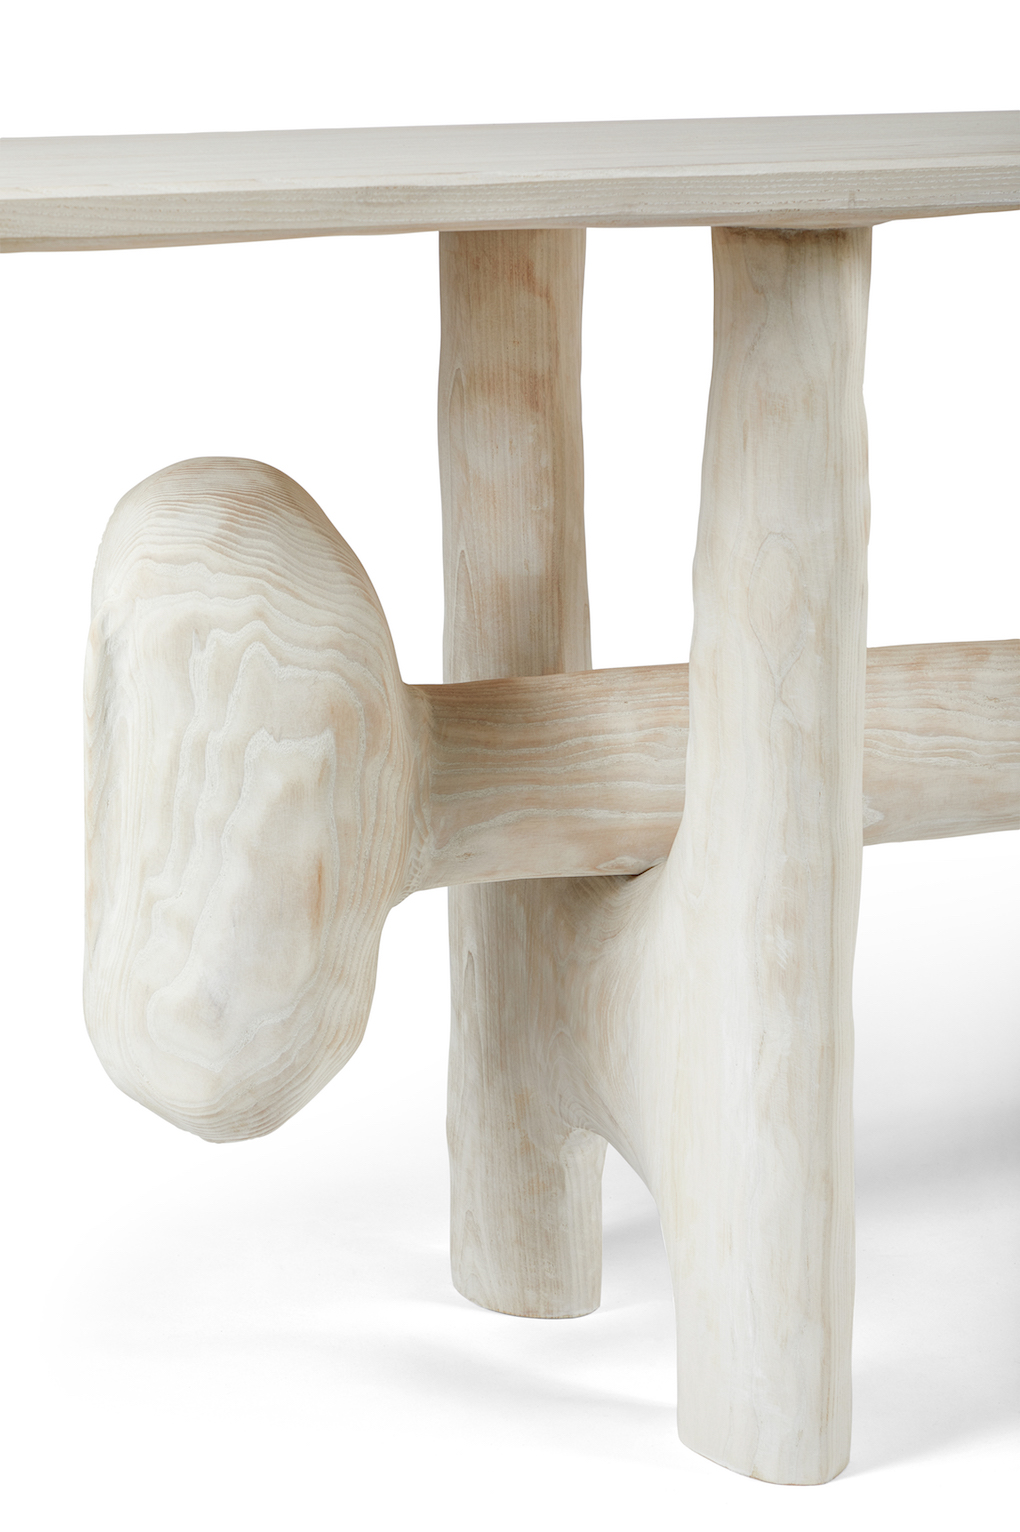 SCULPTURE 004 CONSOLE TABLE (30).jpg